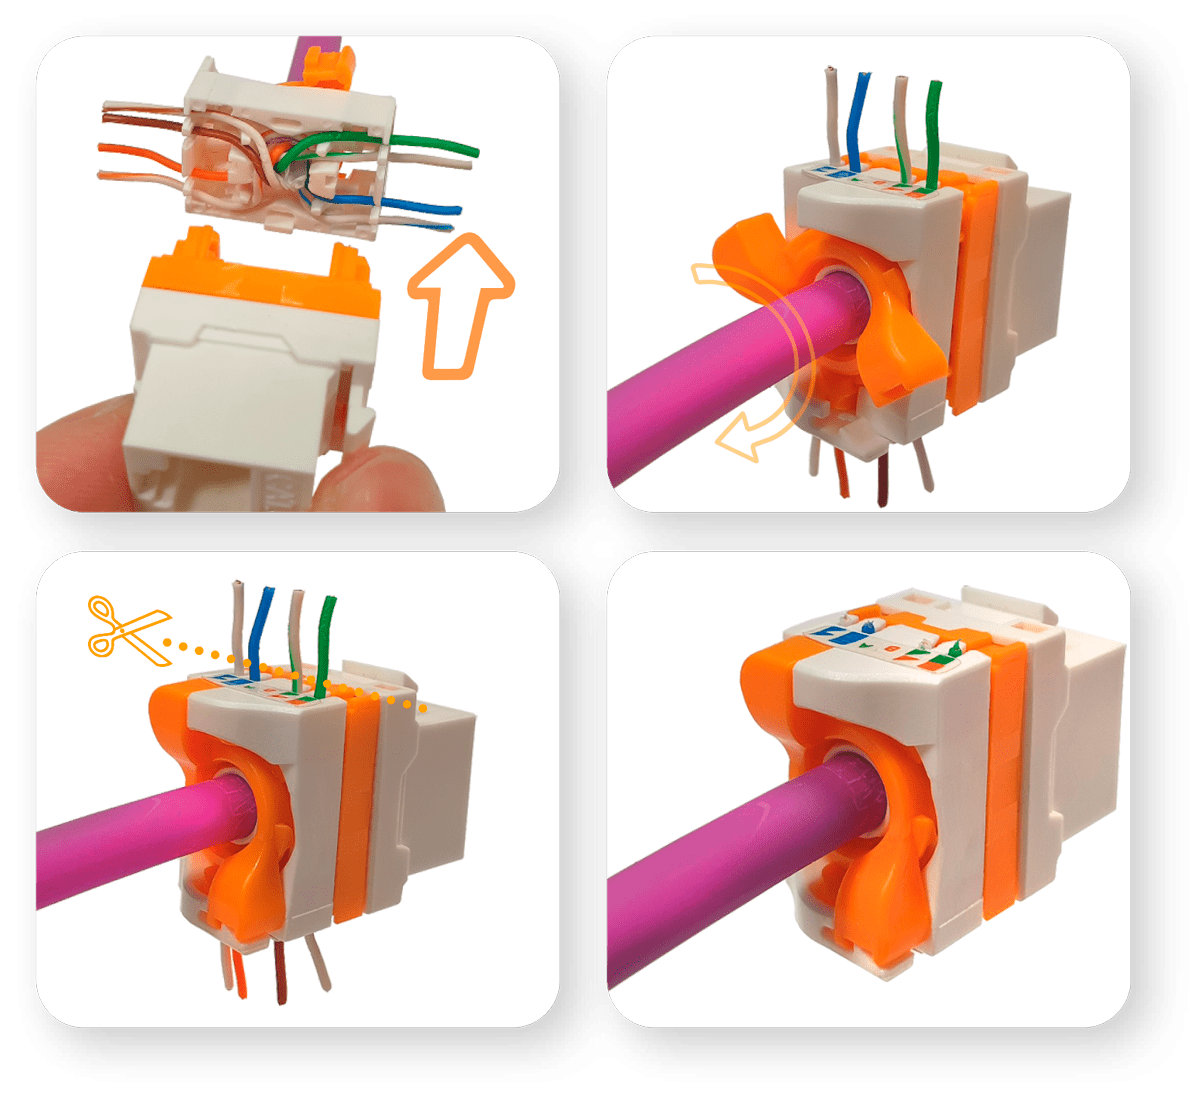 How to use data cable connection simply?